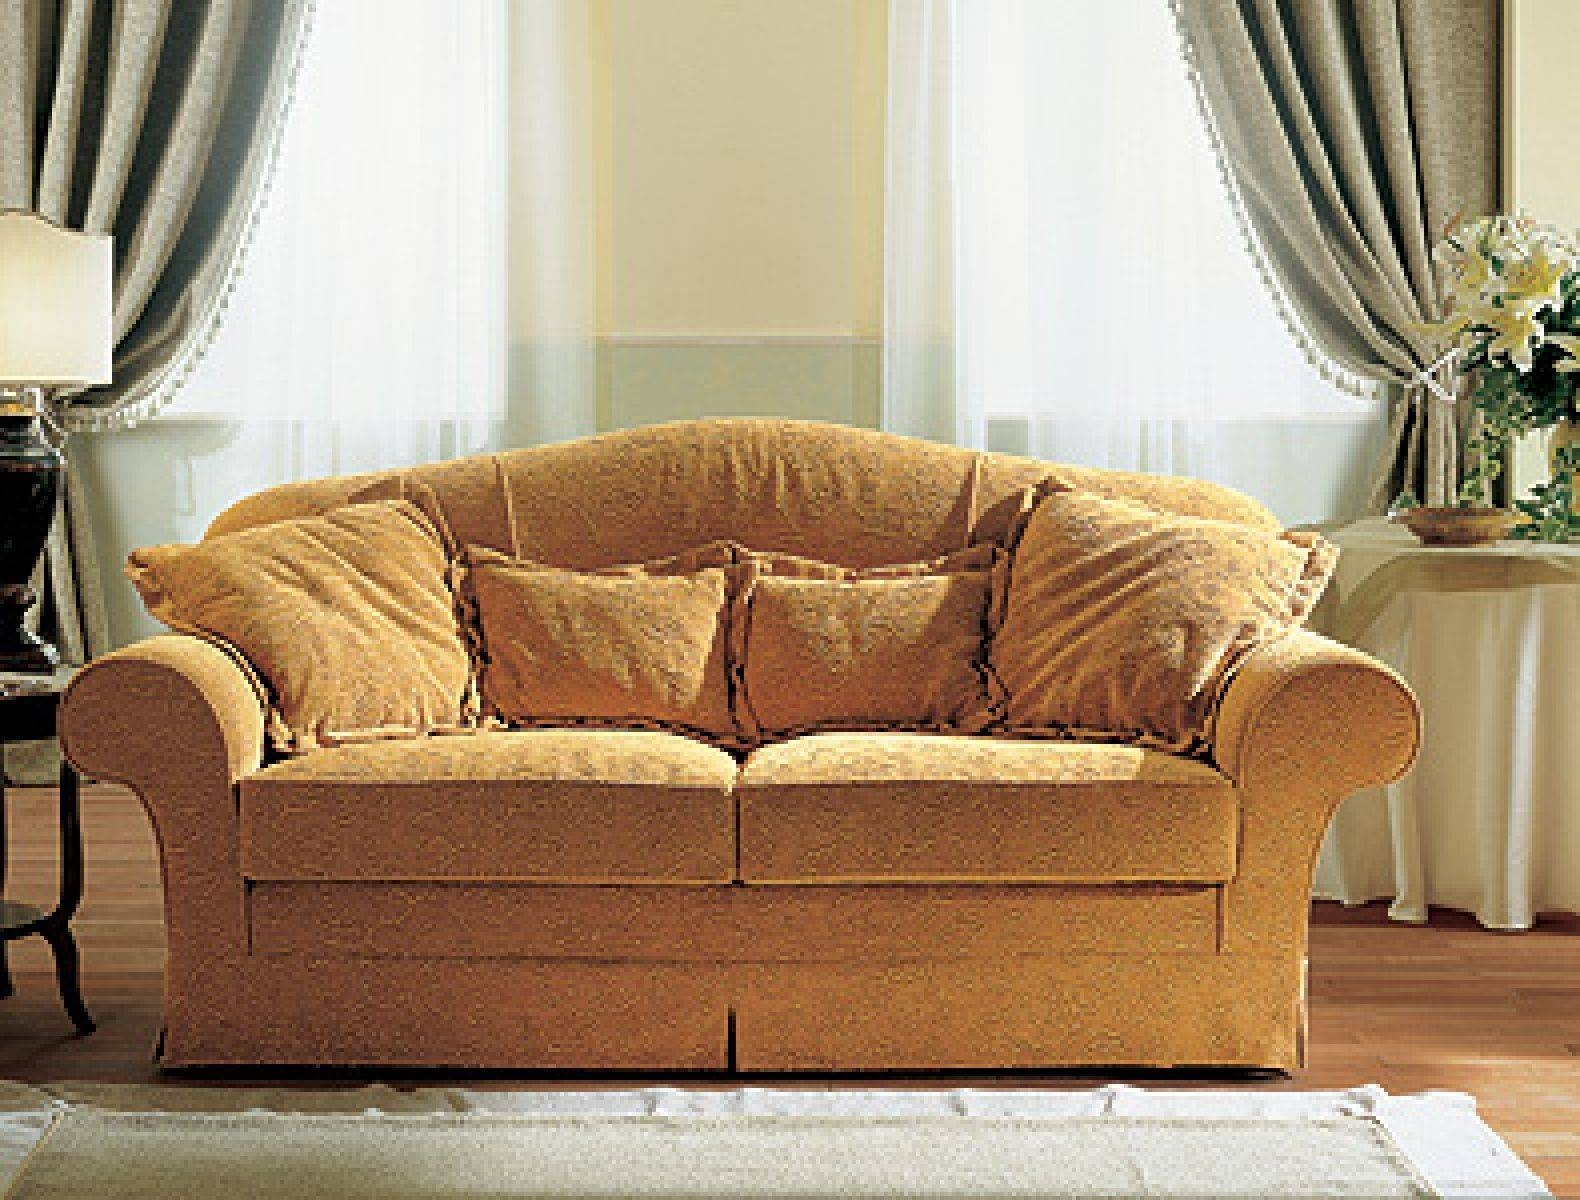 Traditional Sofa / Fabric / 2-Seater / White - Jois - Doimo Salotti within Traditional Fabric Sofas (Image 28 of 30)